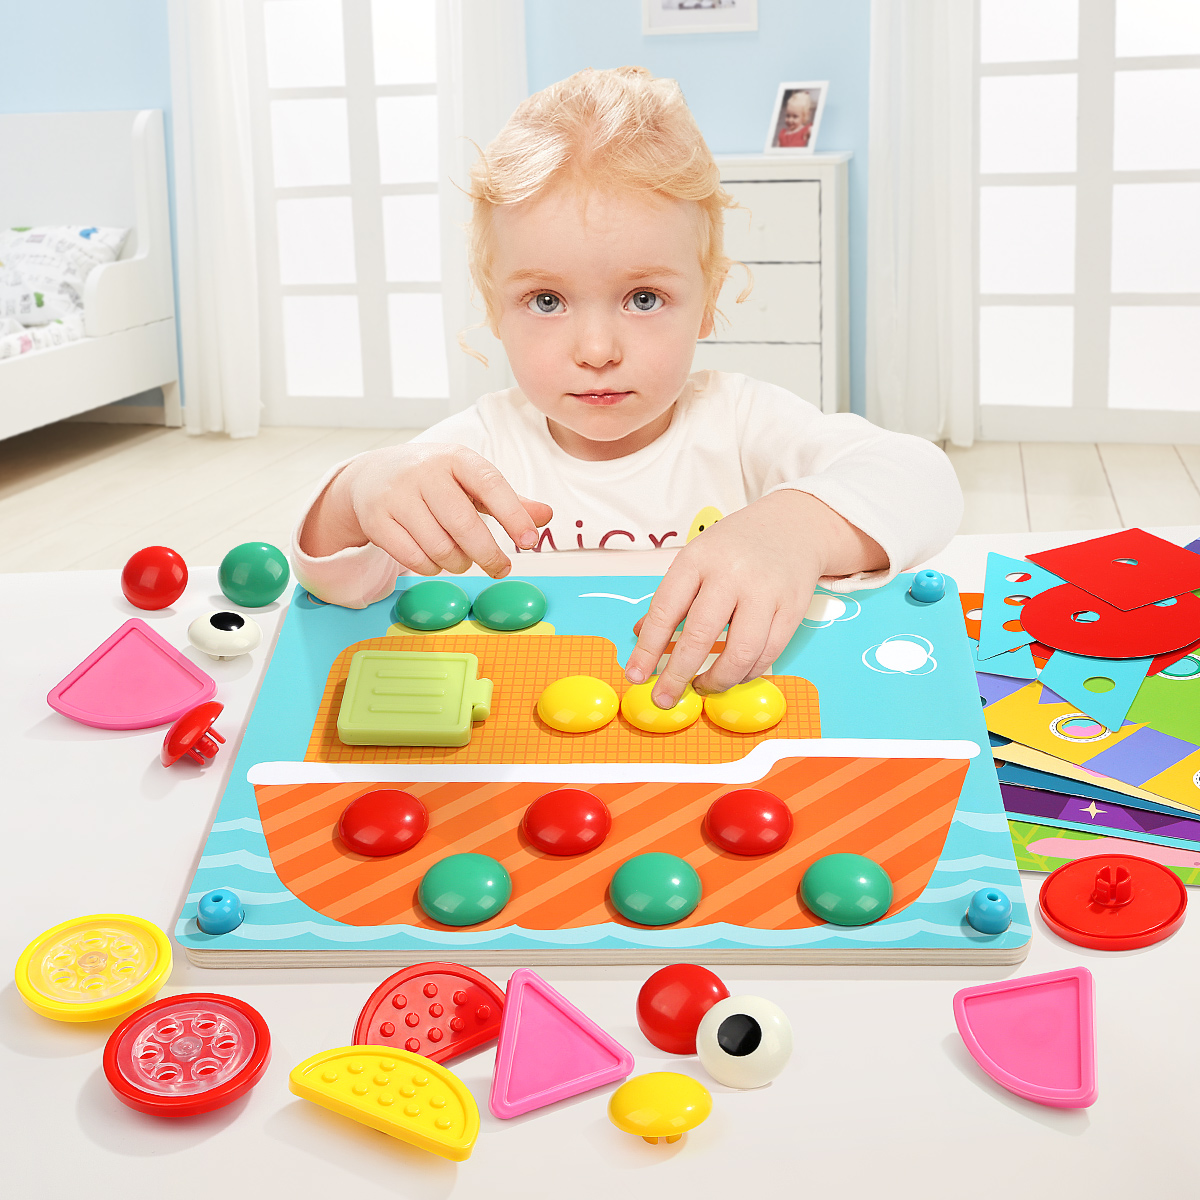 Topbright 2019 Educational Wooden DIY Mushroom Insert Nails Puzzle Board Game Toy for Kids Manufacturers, Topbright 2019 Educational Wooden DIY Mushroom Insert Nails Puzzle Board Game Toy for Kids Factory, Topbright 2019 Educational Wooden DIY Mushroom Insert Nails Puzzle Board Game Toy for Kids